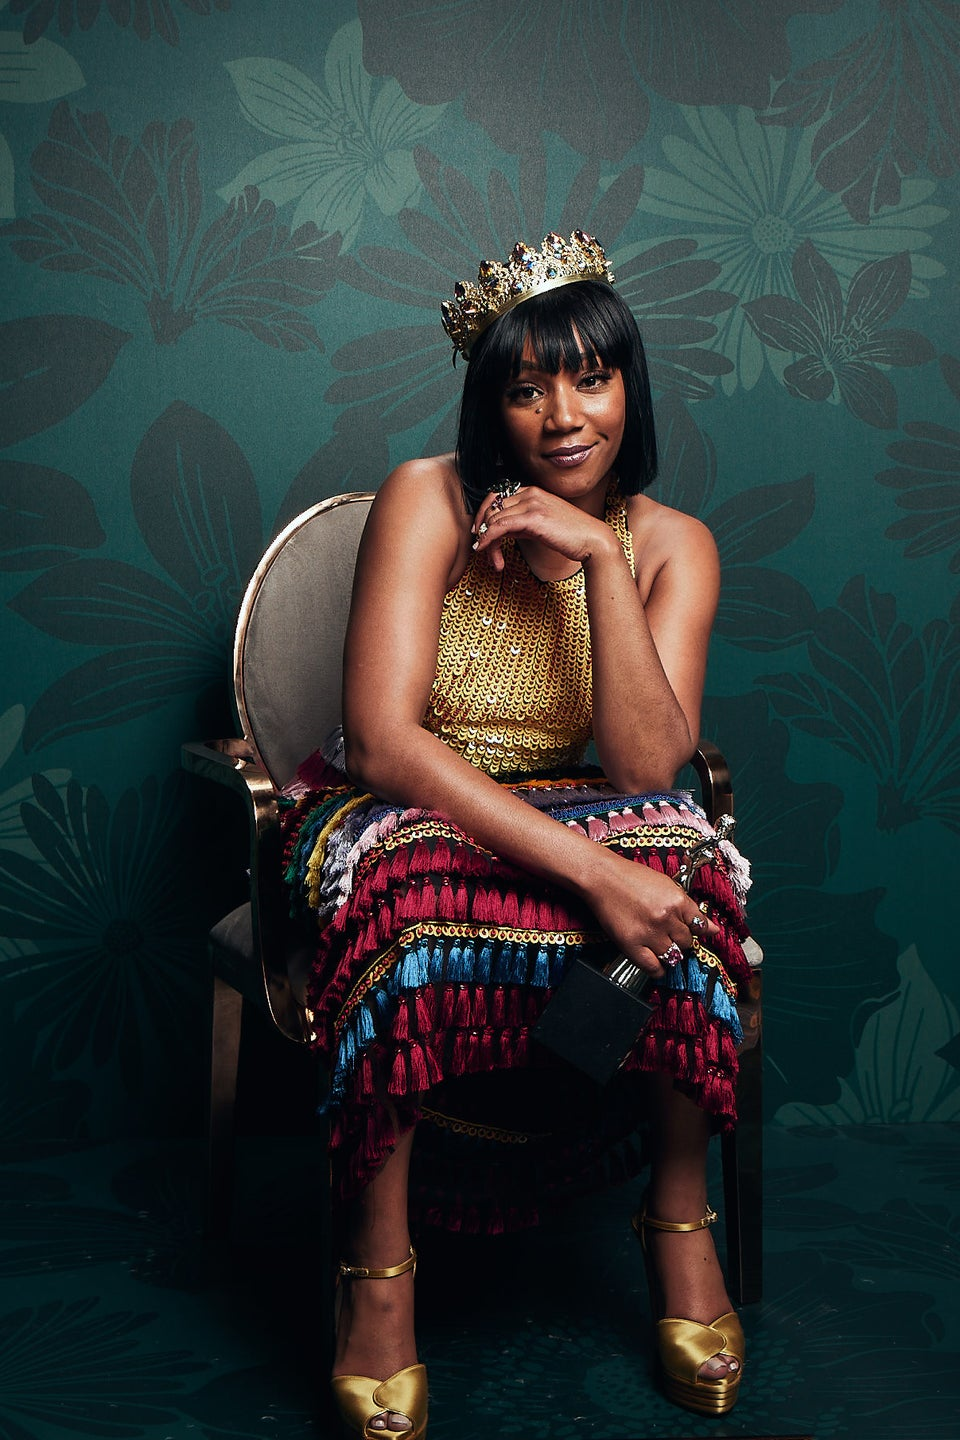 Tiffany Haddish Is Joining The Hollywood Confidential Panel Series For A Candid Conversation You Won't Want To Miss